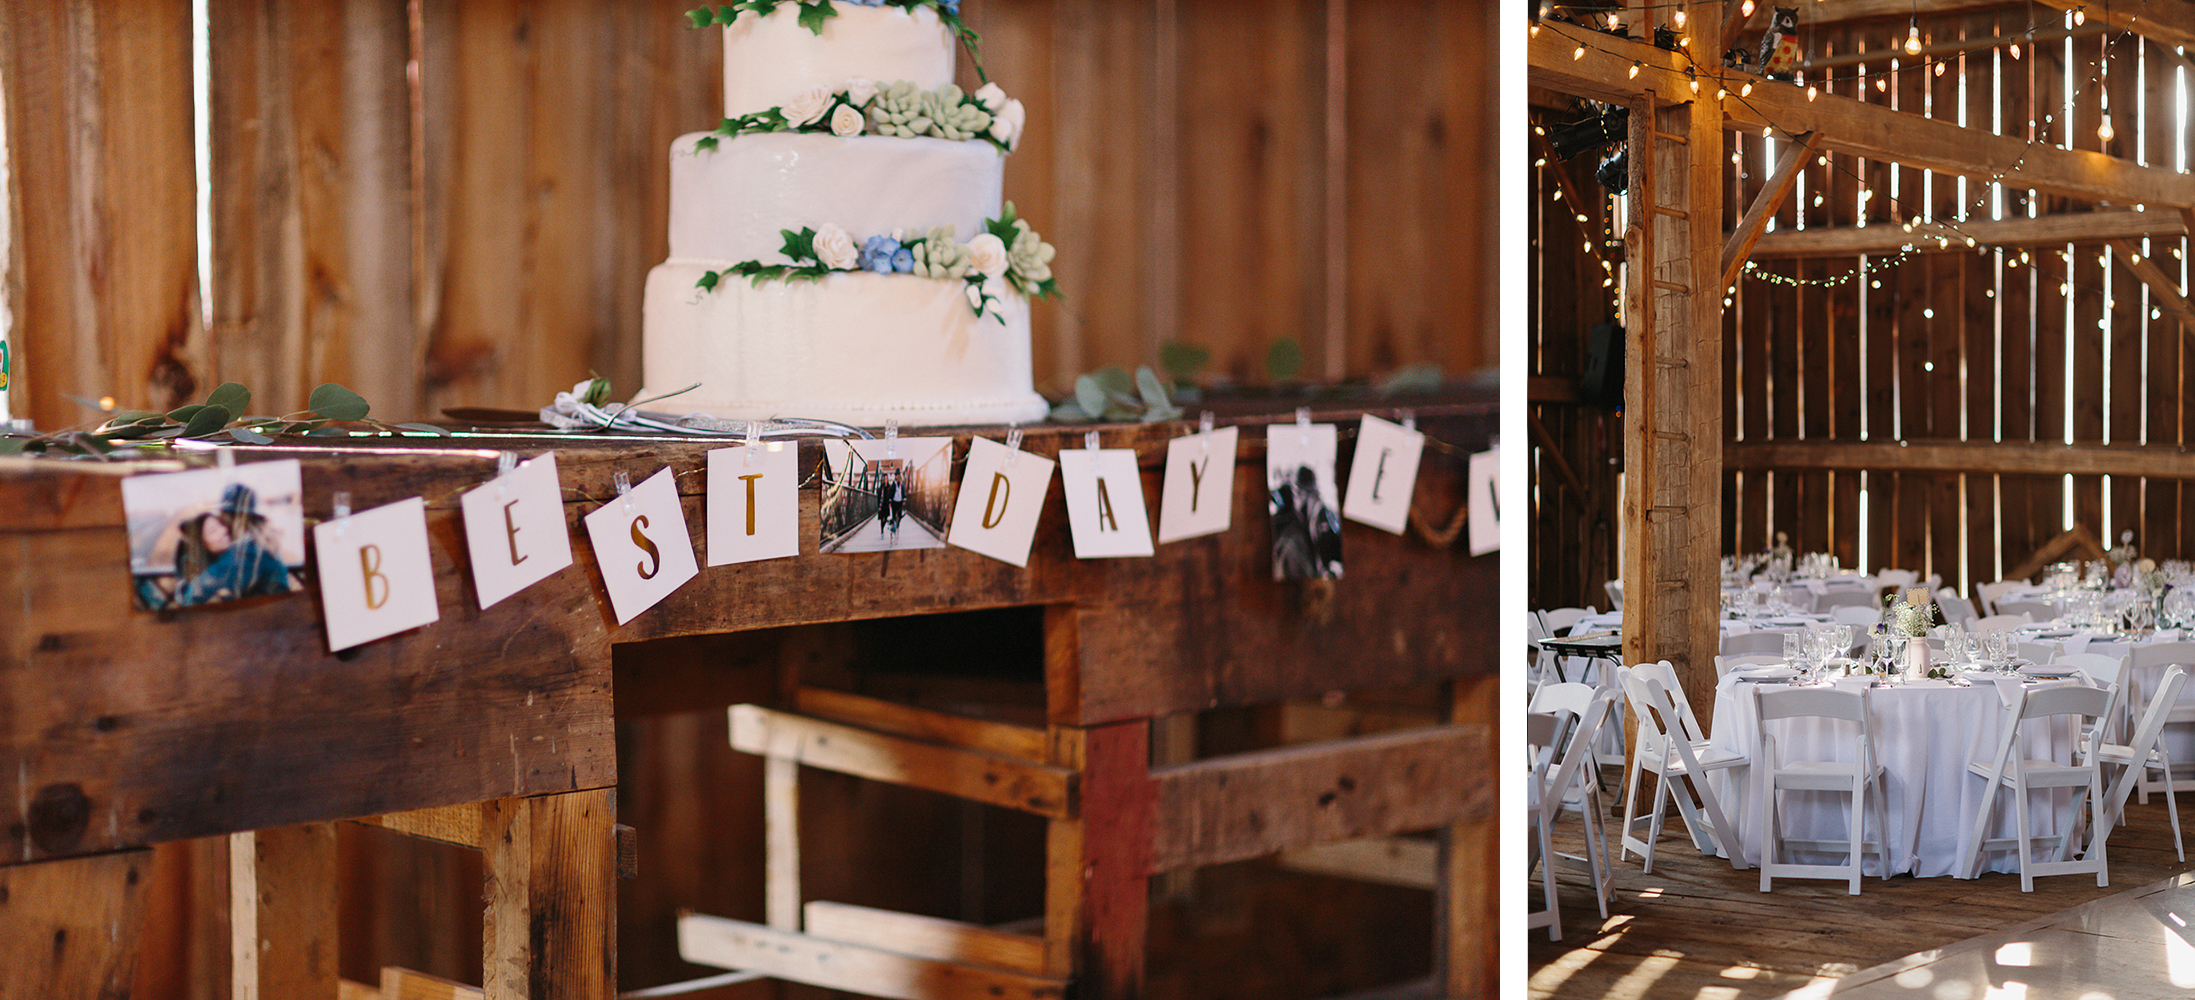 39-cambium-farms-wedding-ryanne-hollies-photography-gay-wedding-lgbtq-trendy-cool-badass-junebug-weddings-inspiration-wedding-reception-in-a-barn-white-decor-tablescapes.jpg